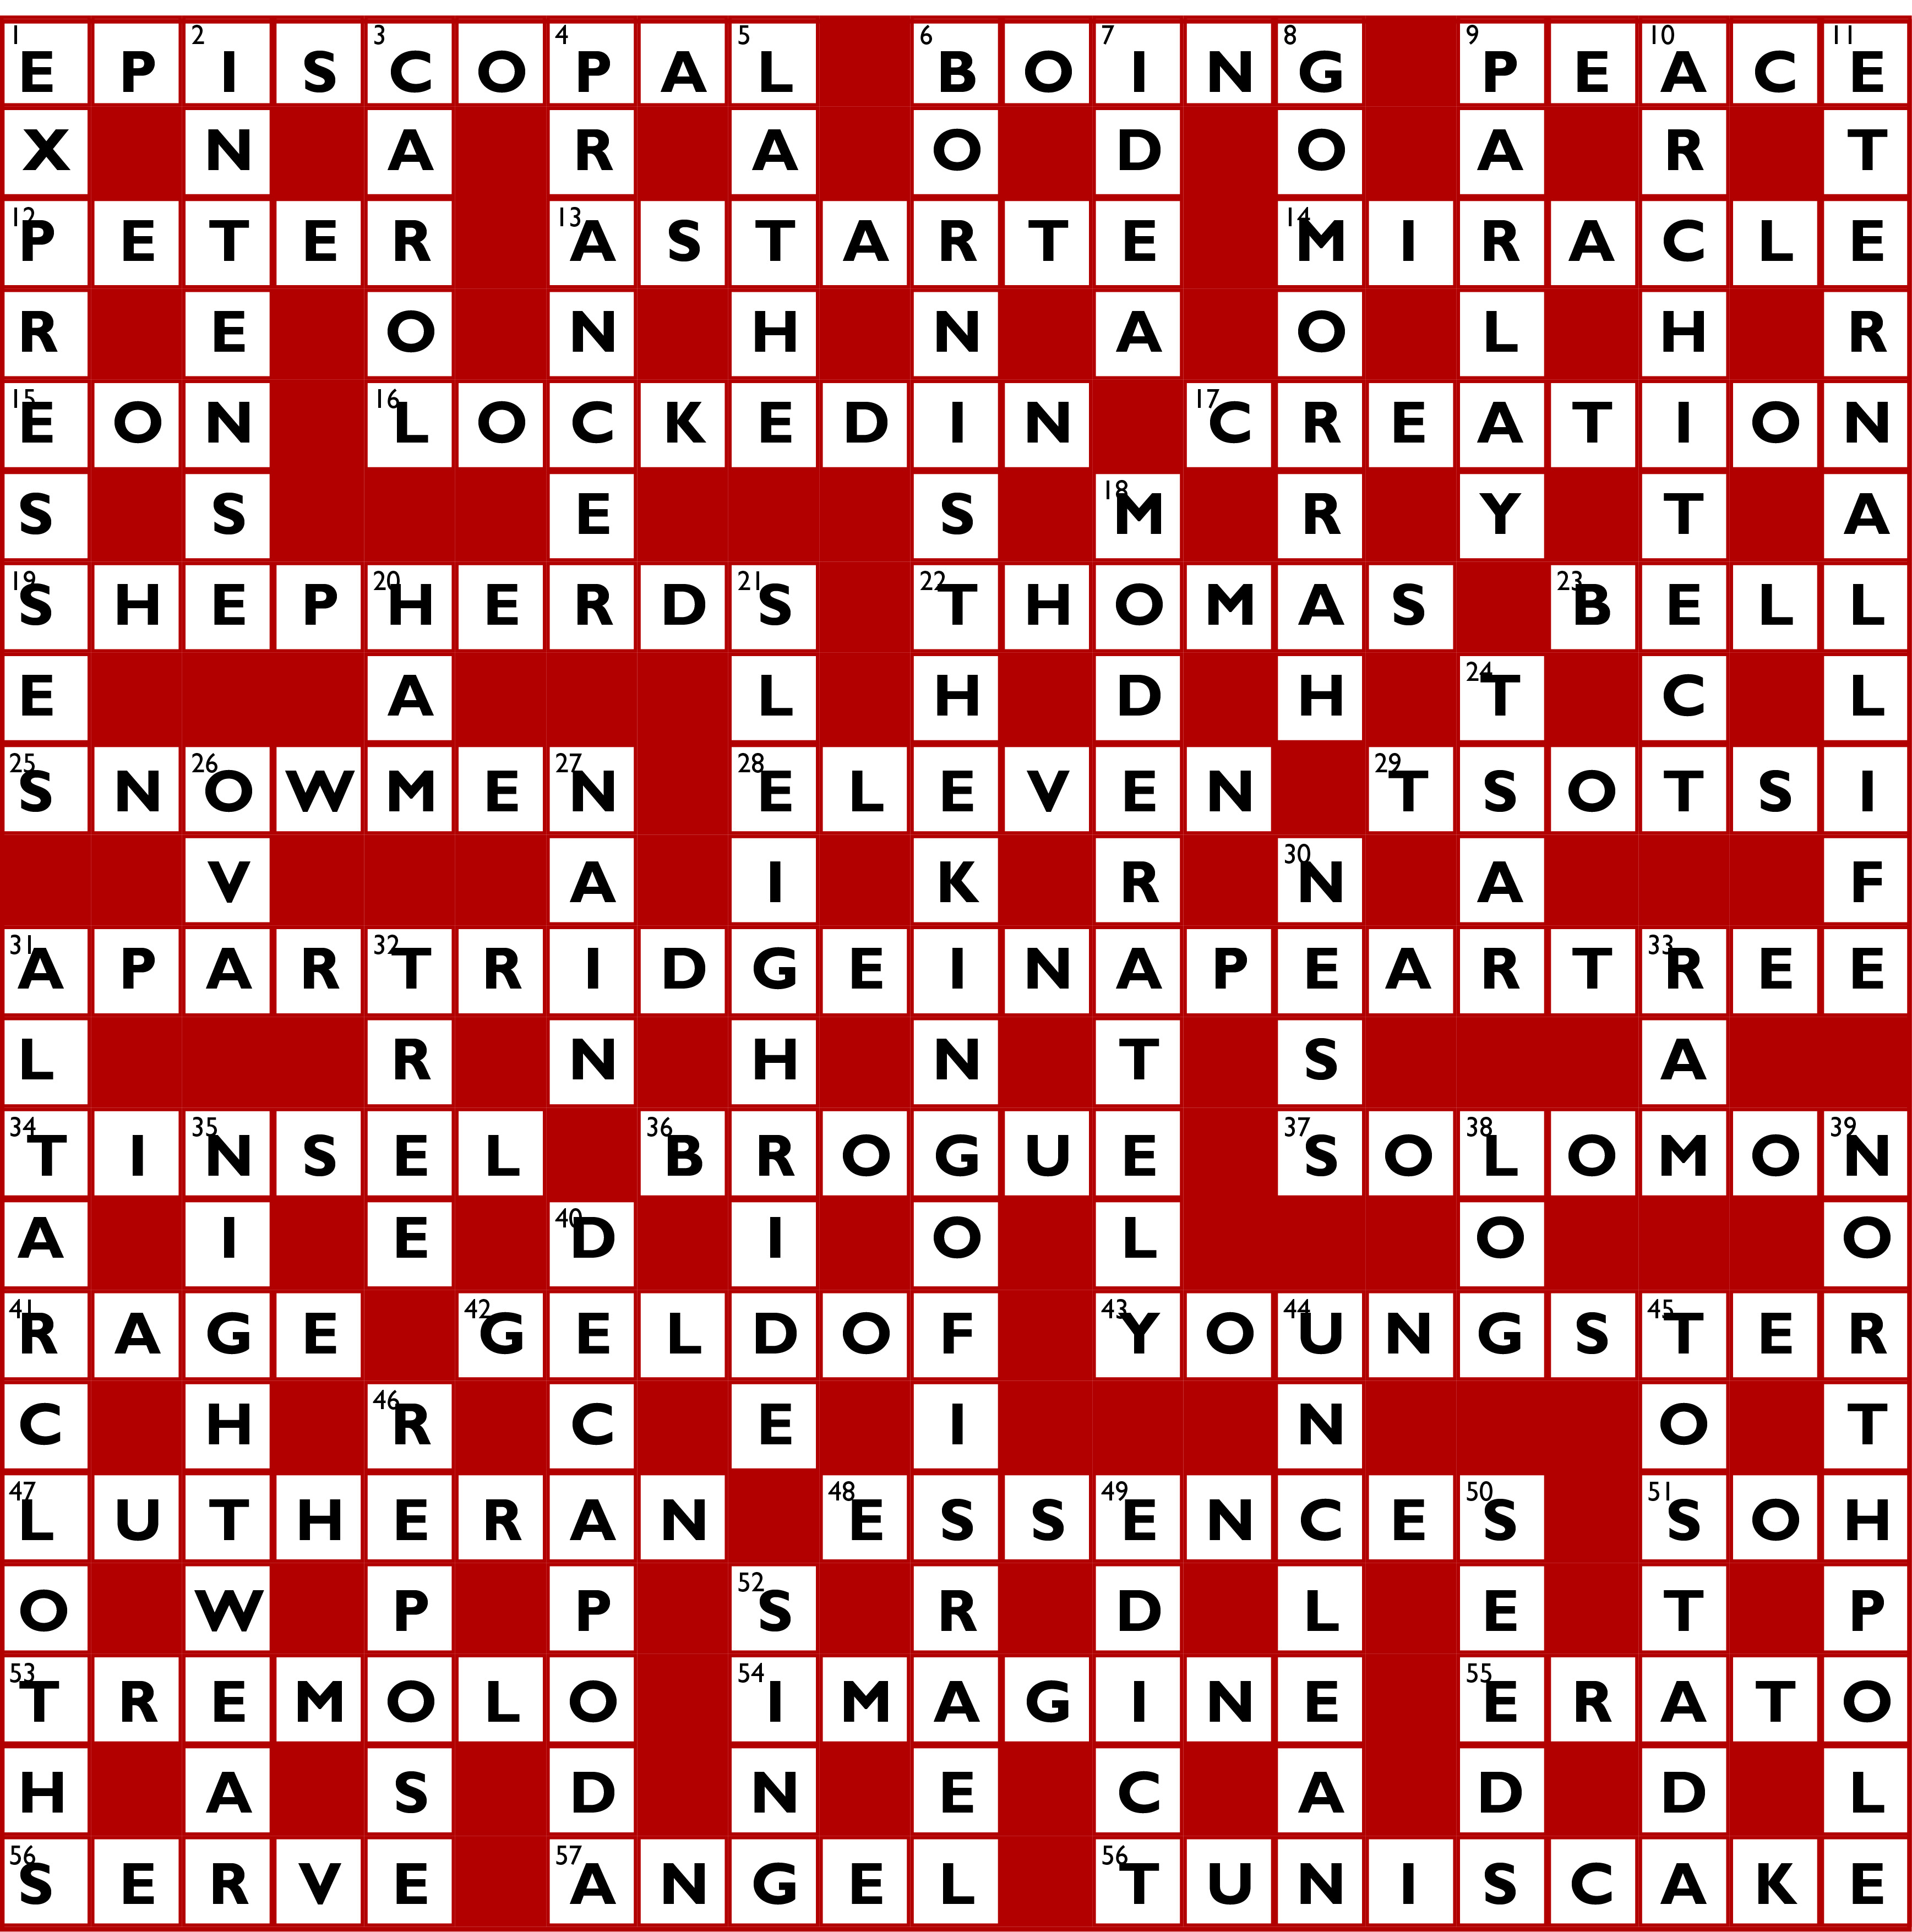 answers for the 2016 christmas crossword - Christmas Crossword Answers